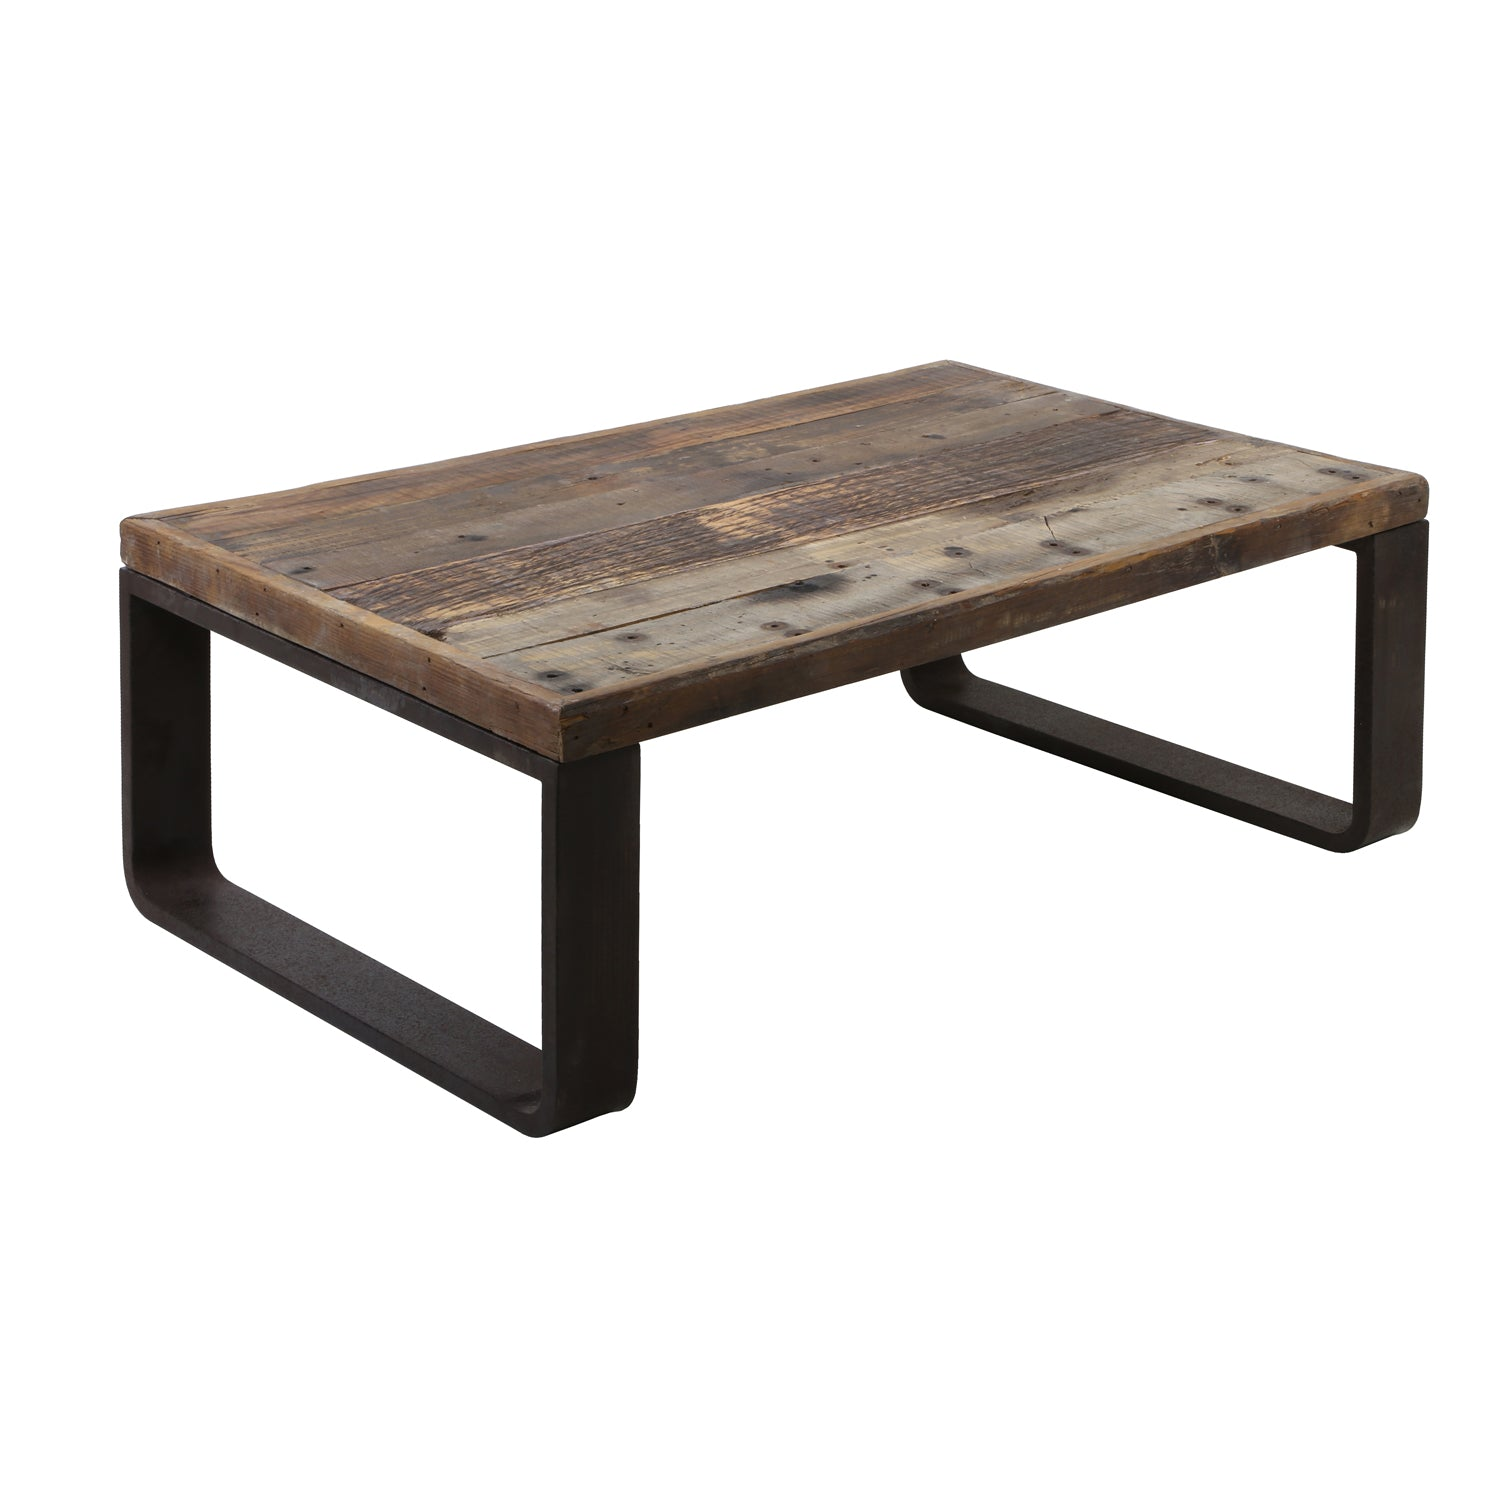 Coffee Table - Rail wood